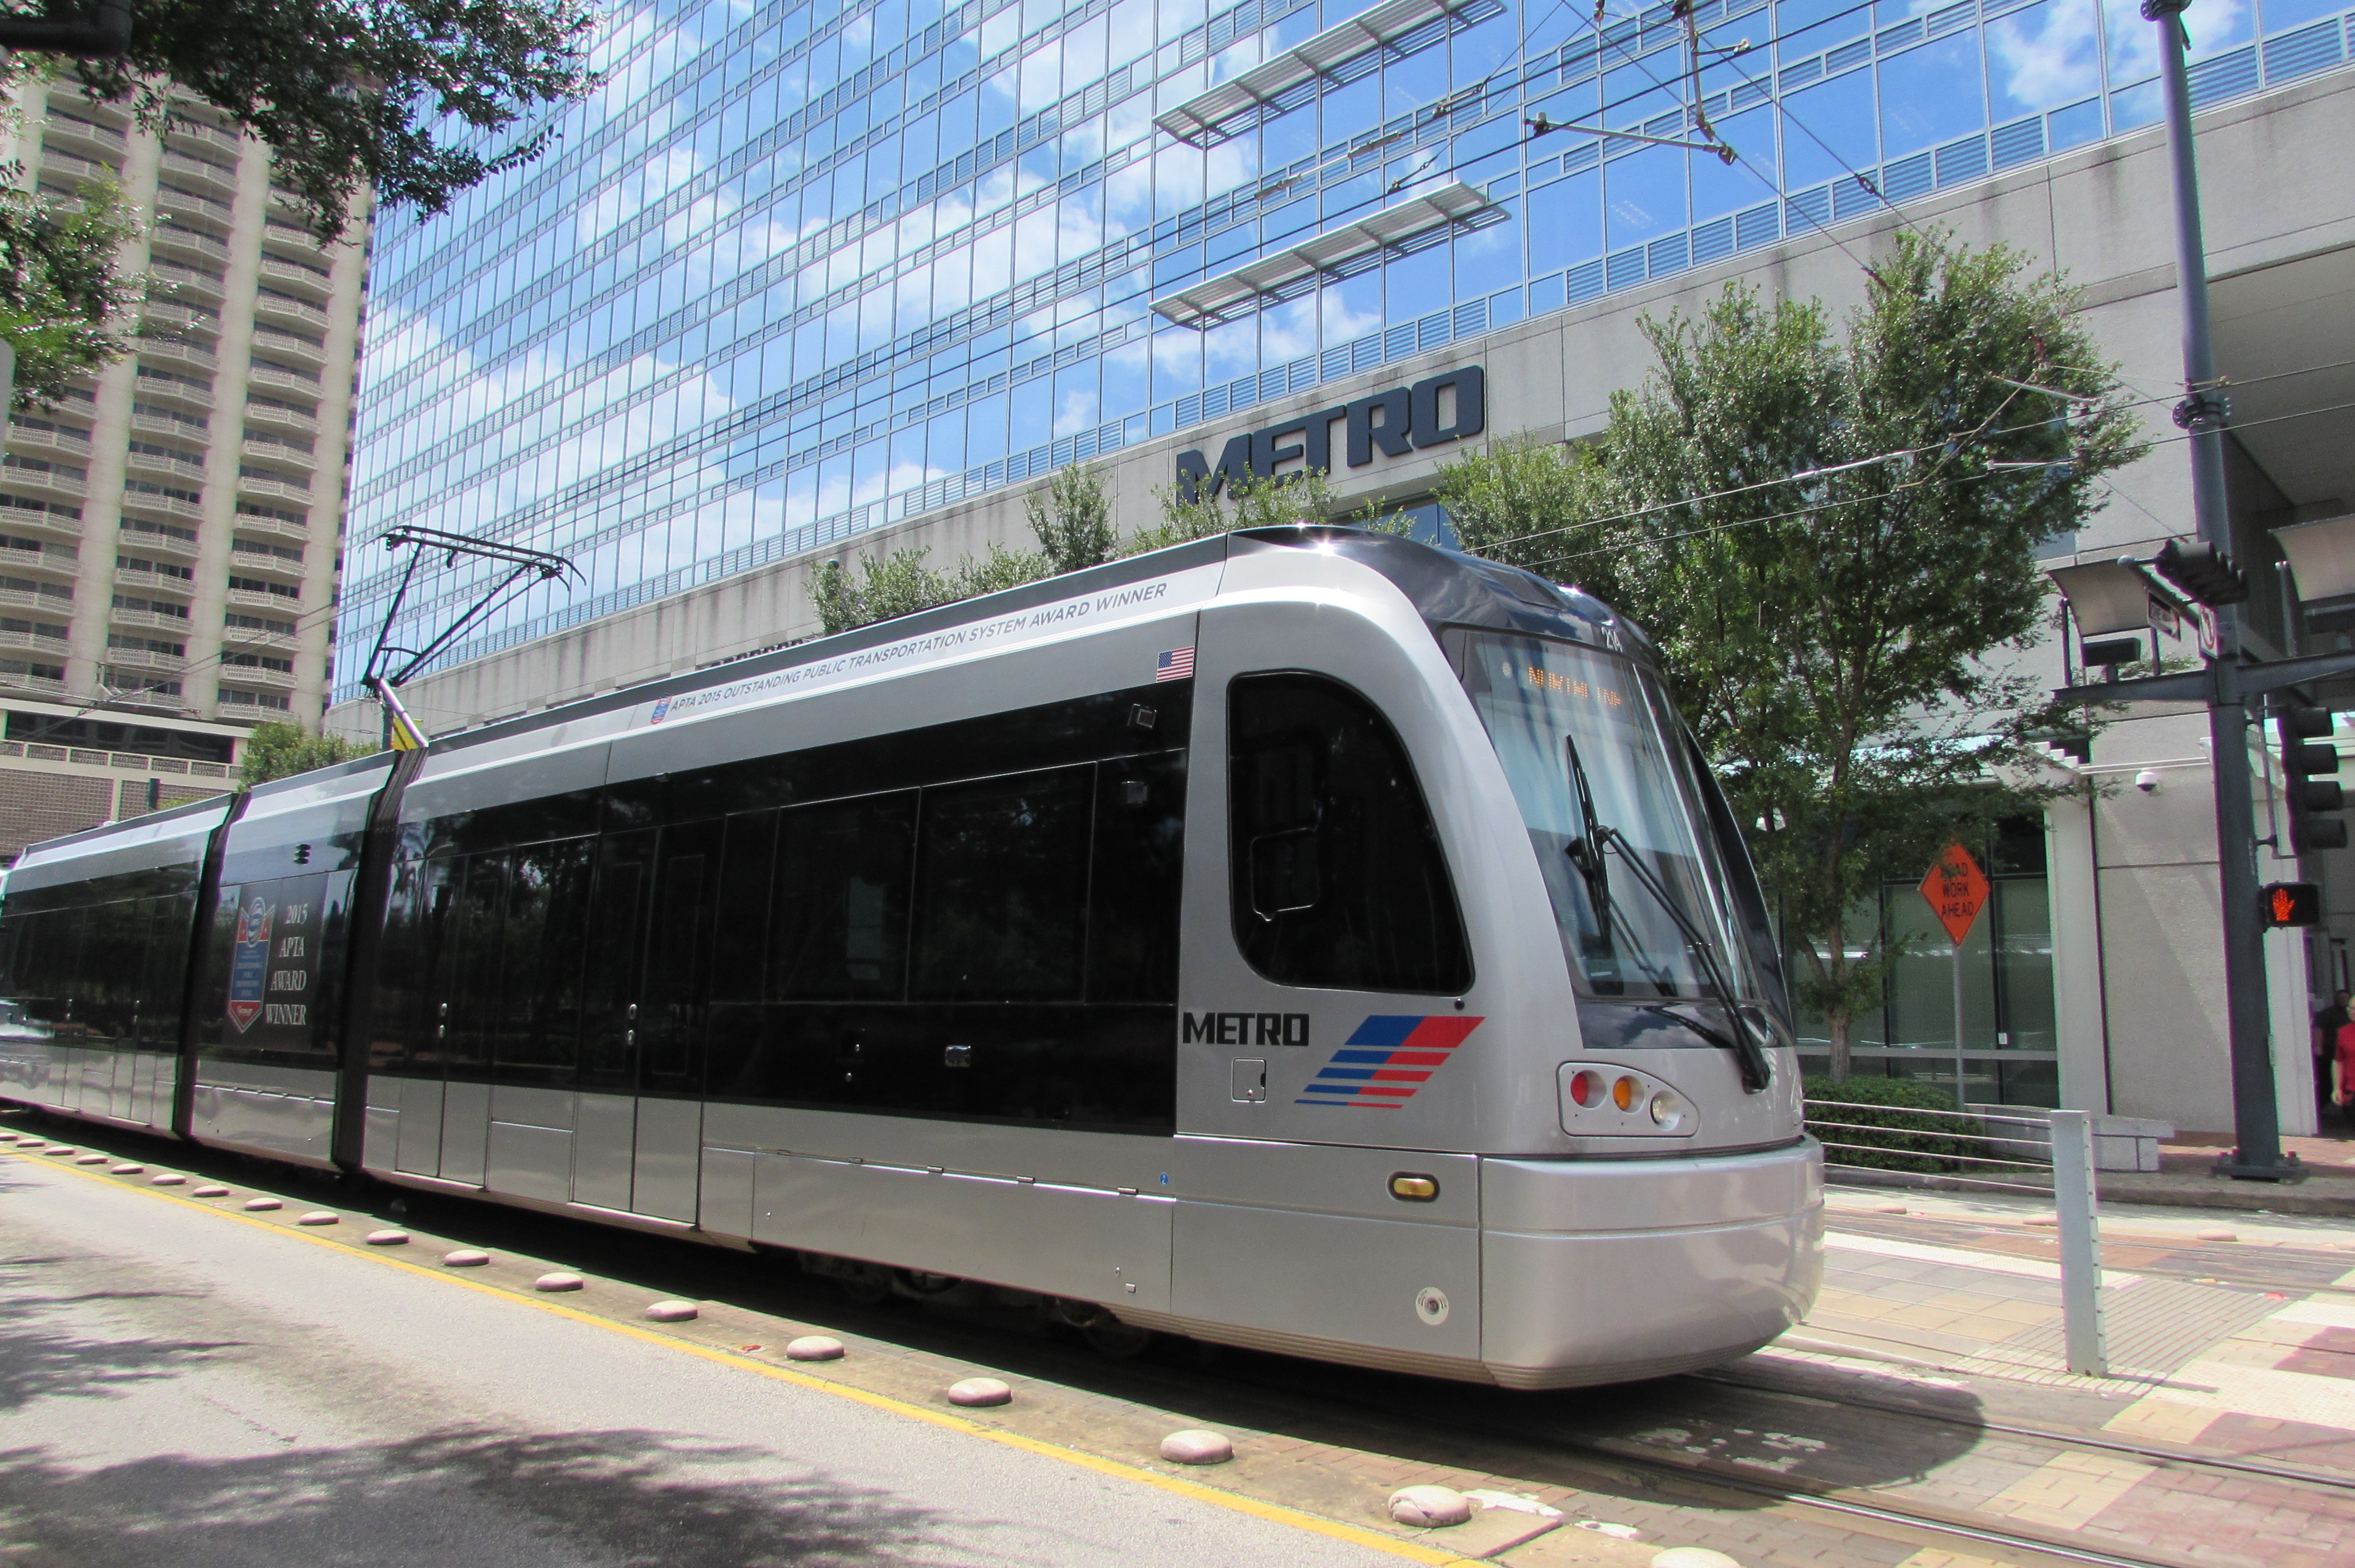 Light rail train in front of Metro's headquarters on Main Street.